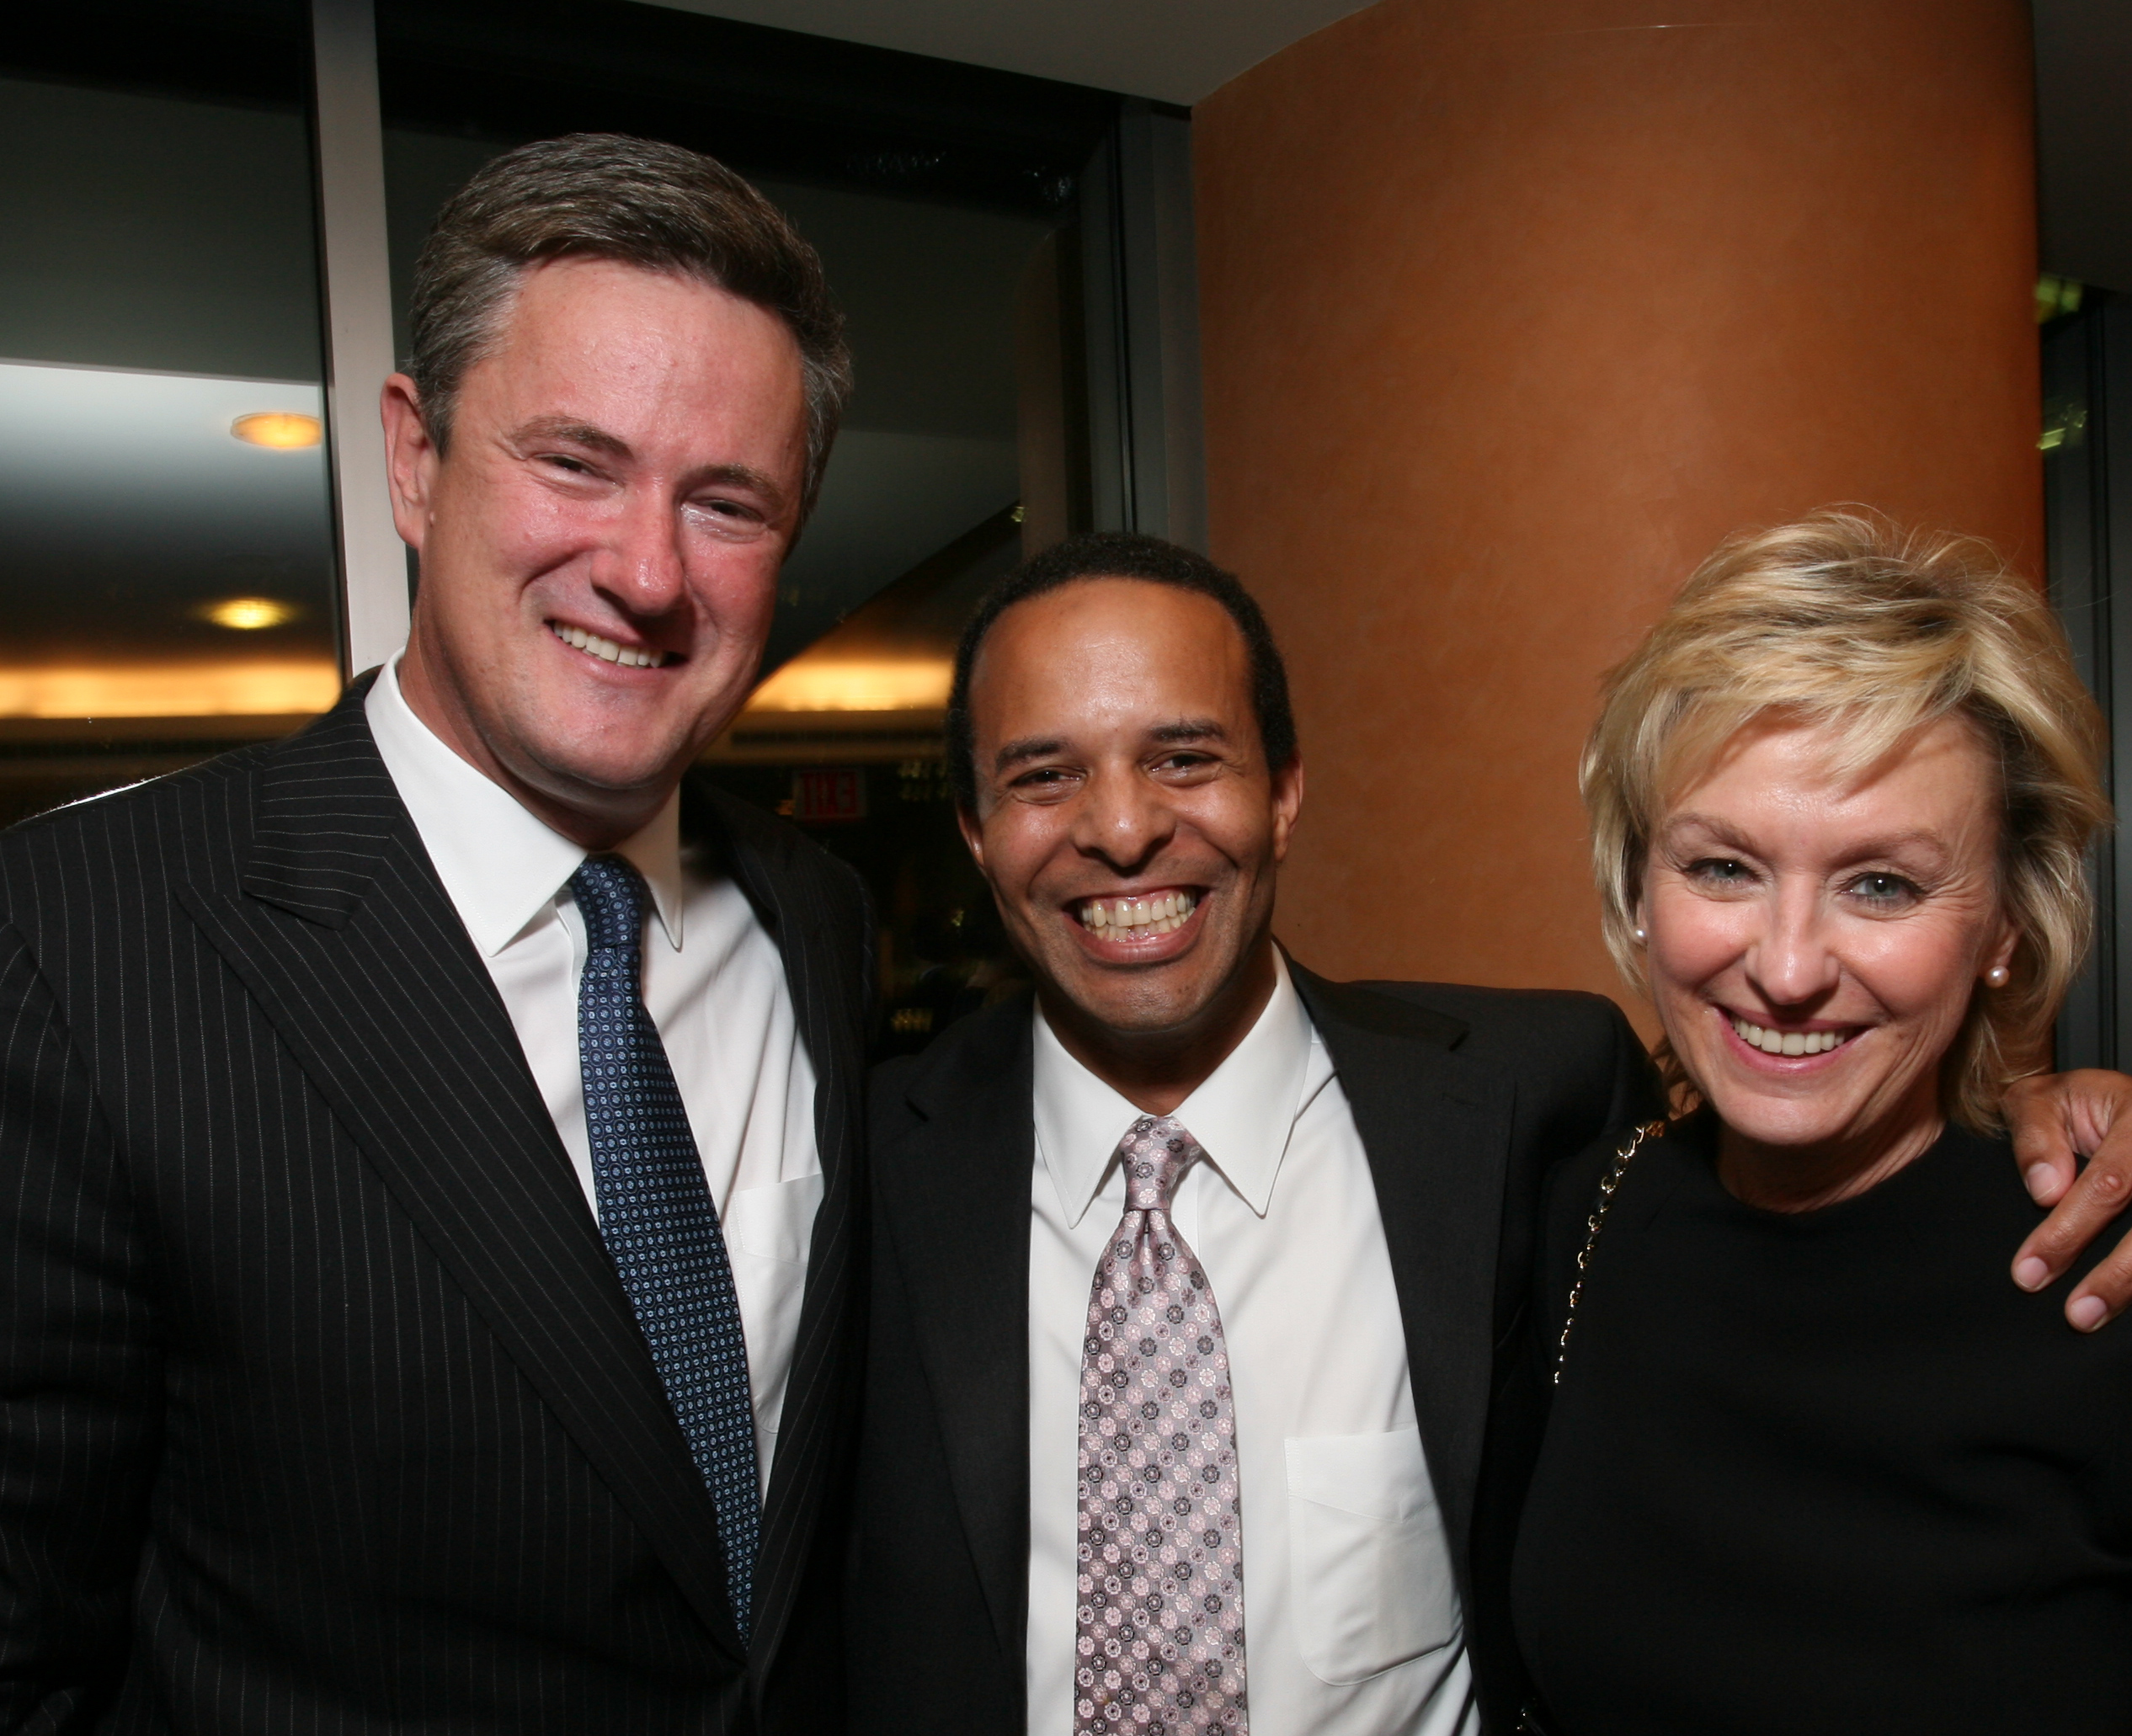 Tina Brown and Joe Scarborough